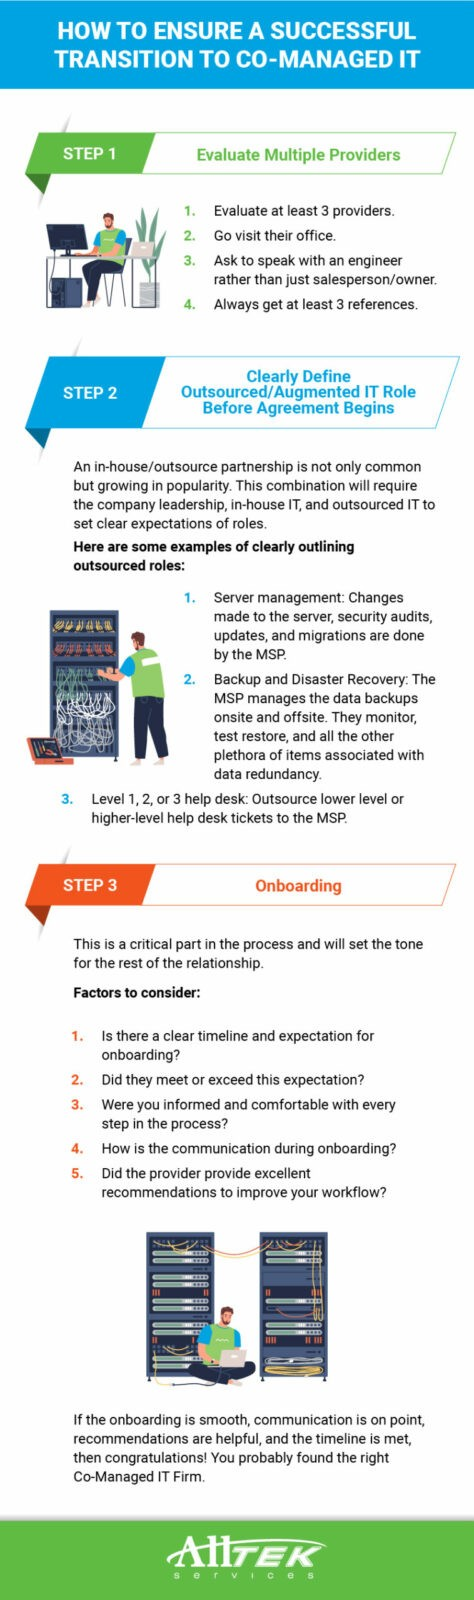 Transitioning to a Co-Managed IT Provider